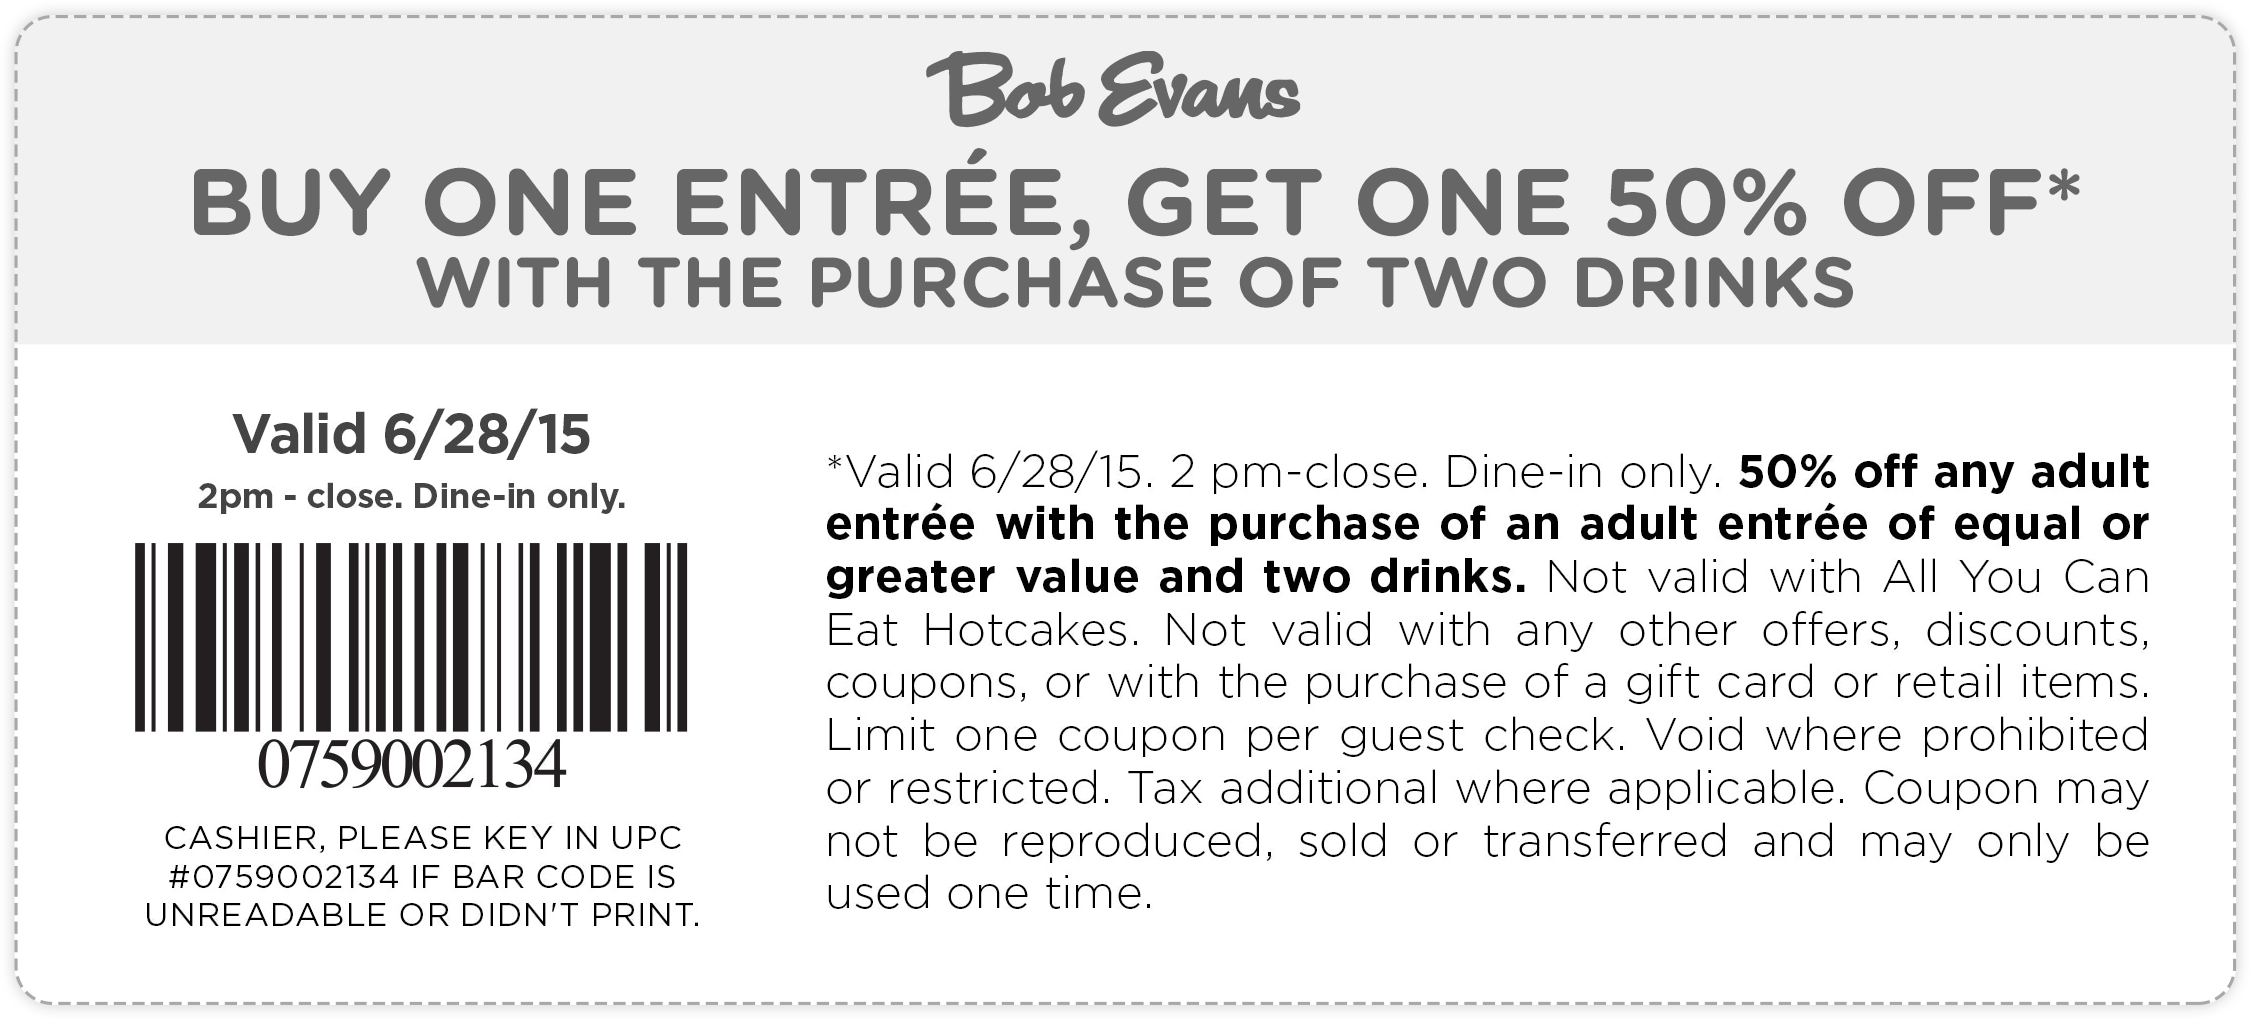 Bob Evans Coupon June 2018 Second entree 50% off today at Bob Evans